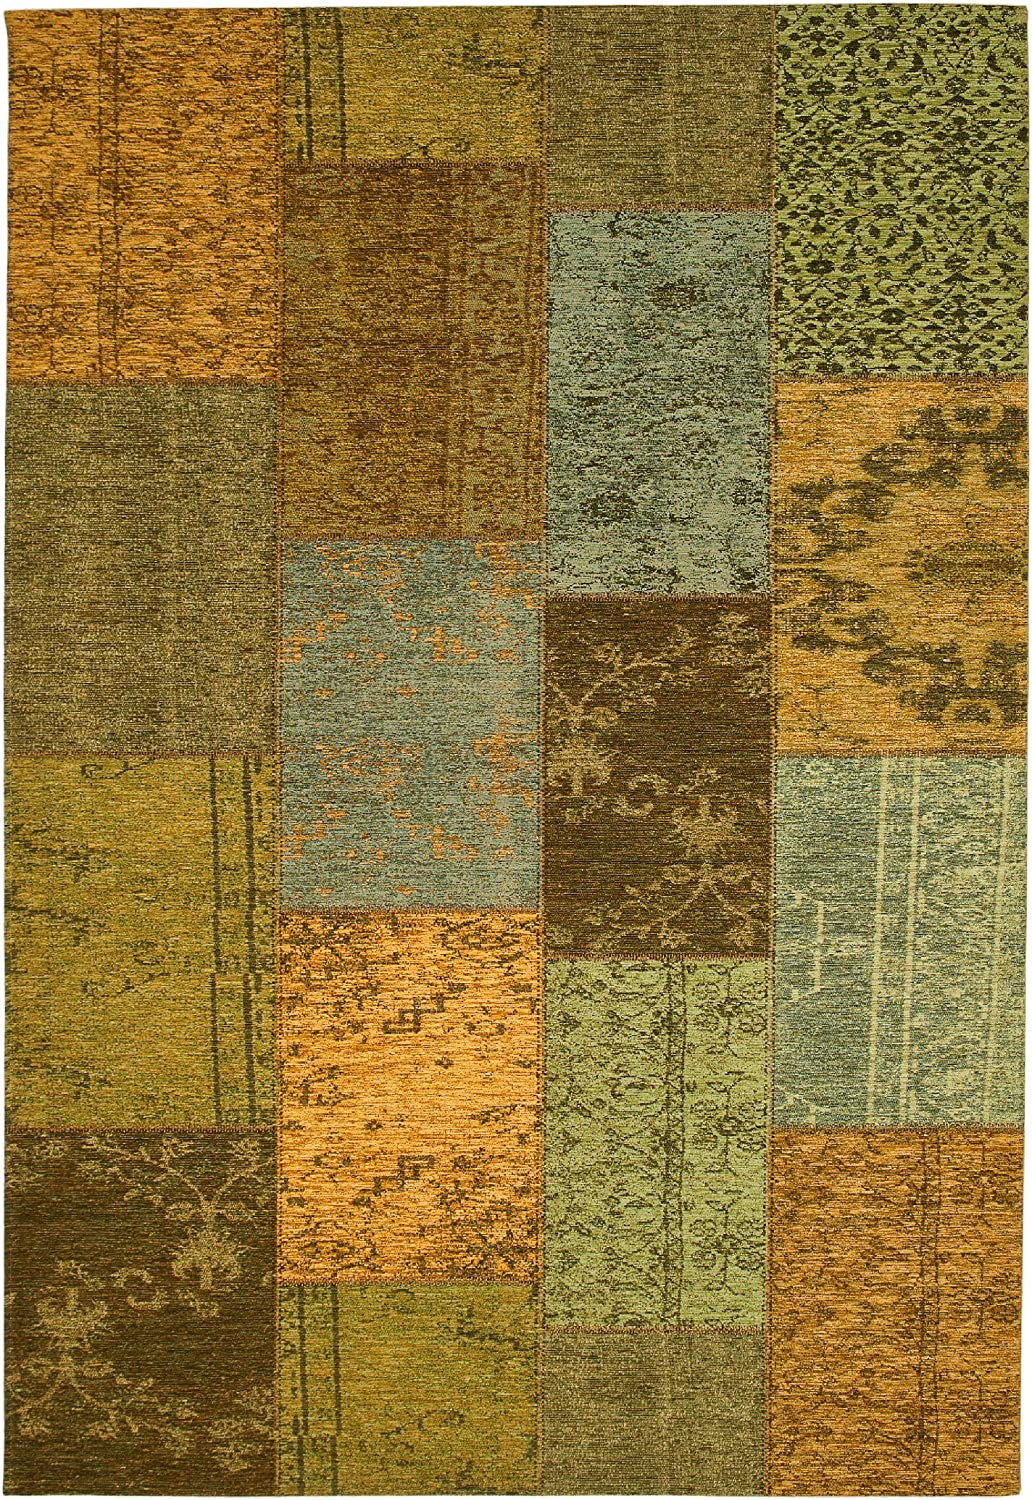 "Sona-Lux Contemporary rug apple green ""4 sizes availlable"" 6ft5""x9ft8"""